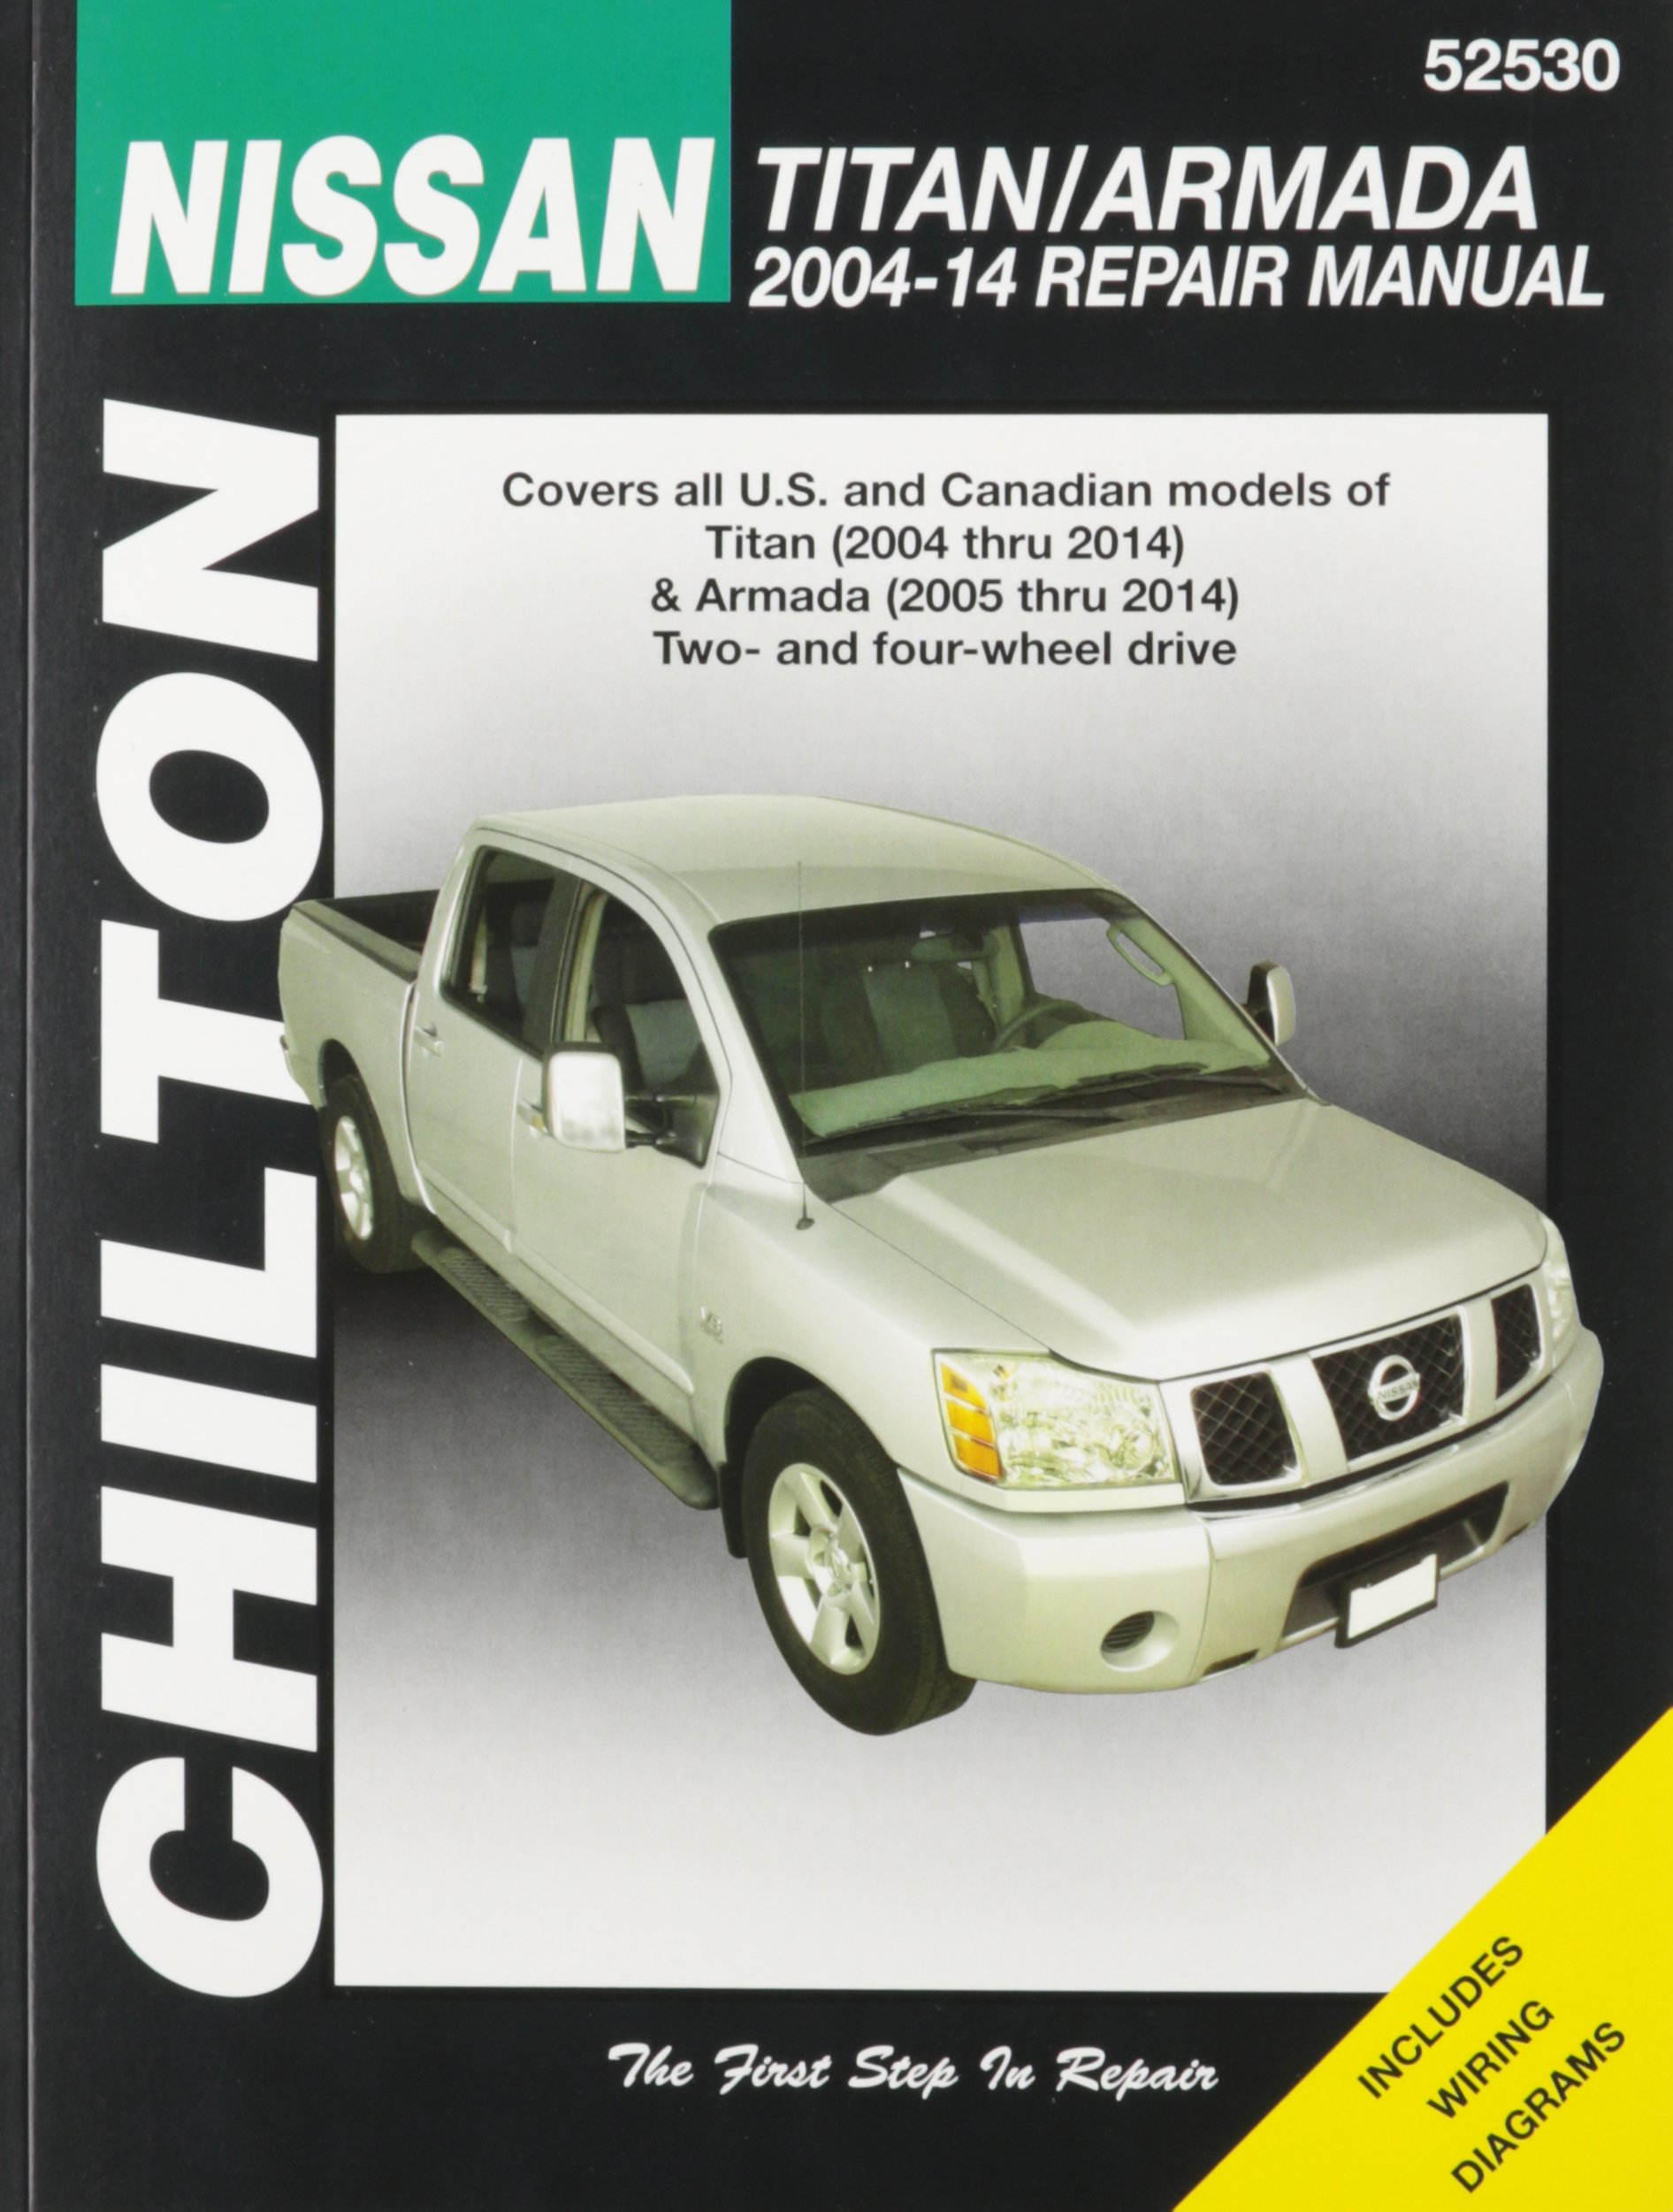 2014 Nissan Pathfinder Wiring Diagram Chilton Titan Armada 2004 Repair Manual Covers All Us And Canadian Modes Of Thru 2005 Two